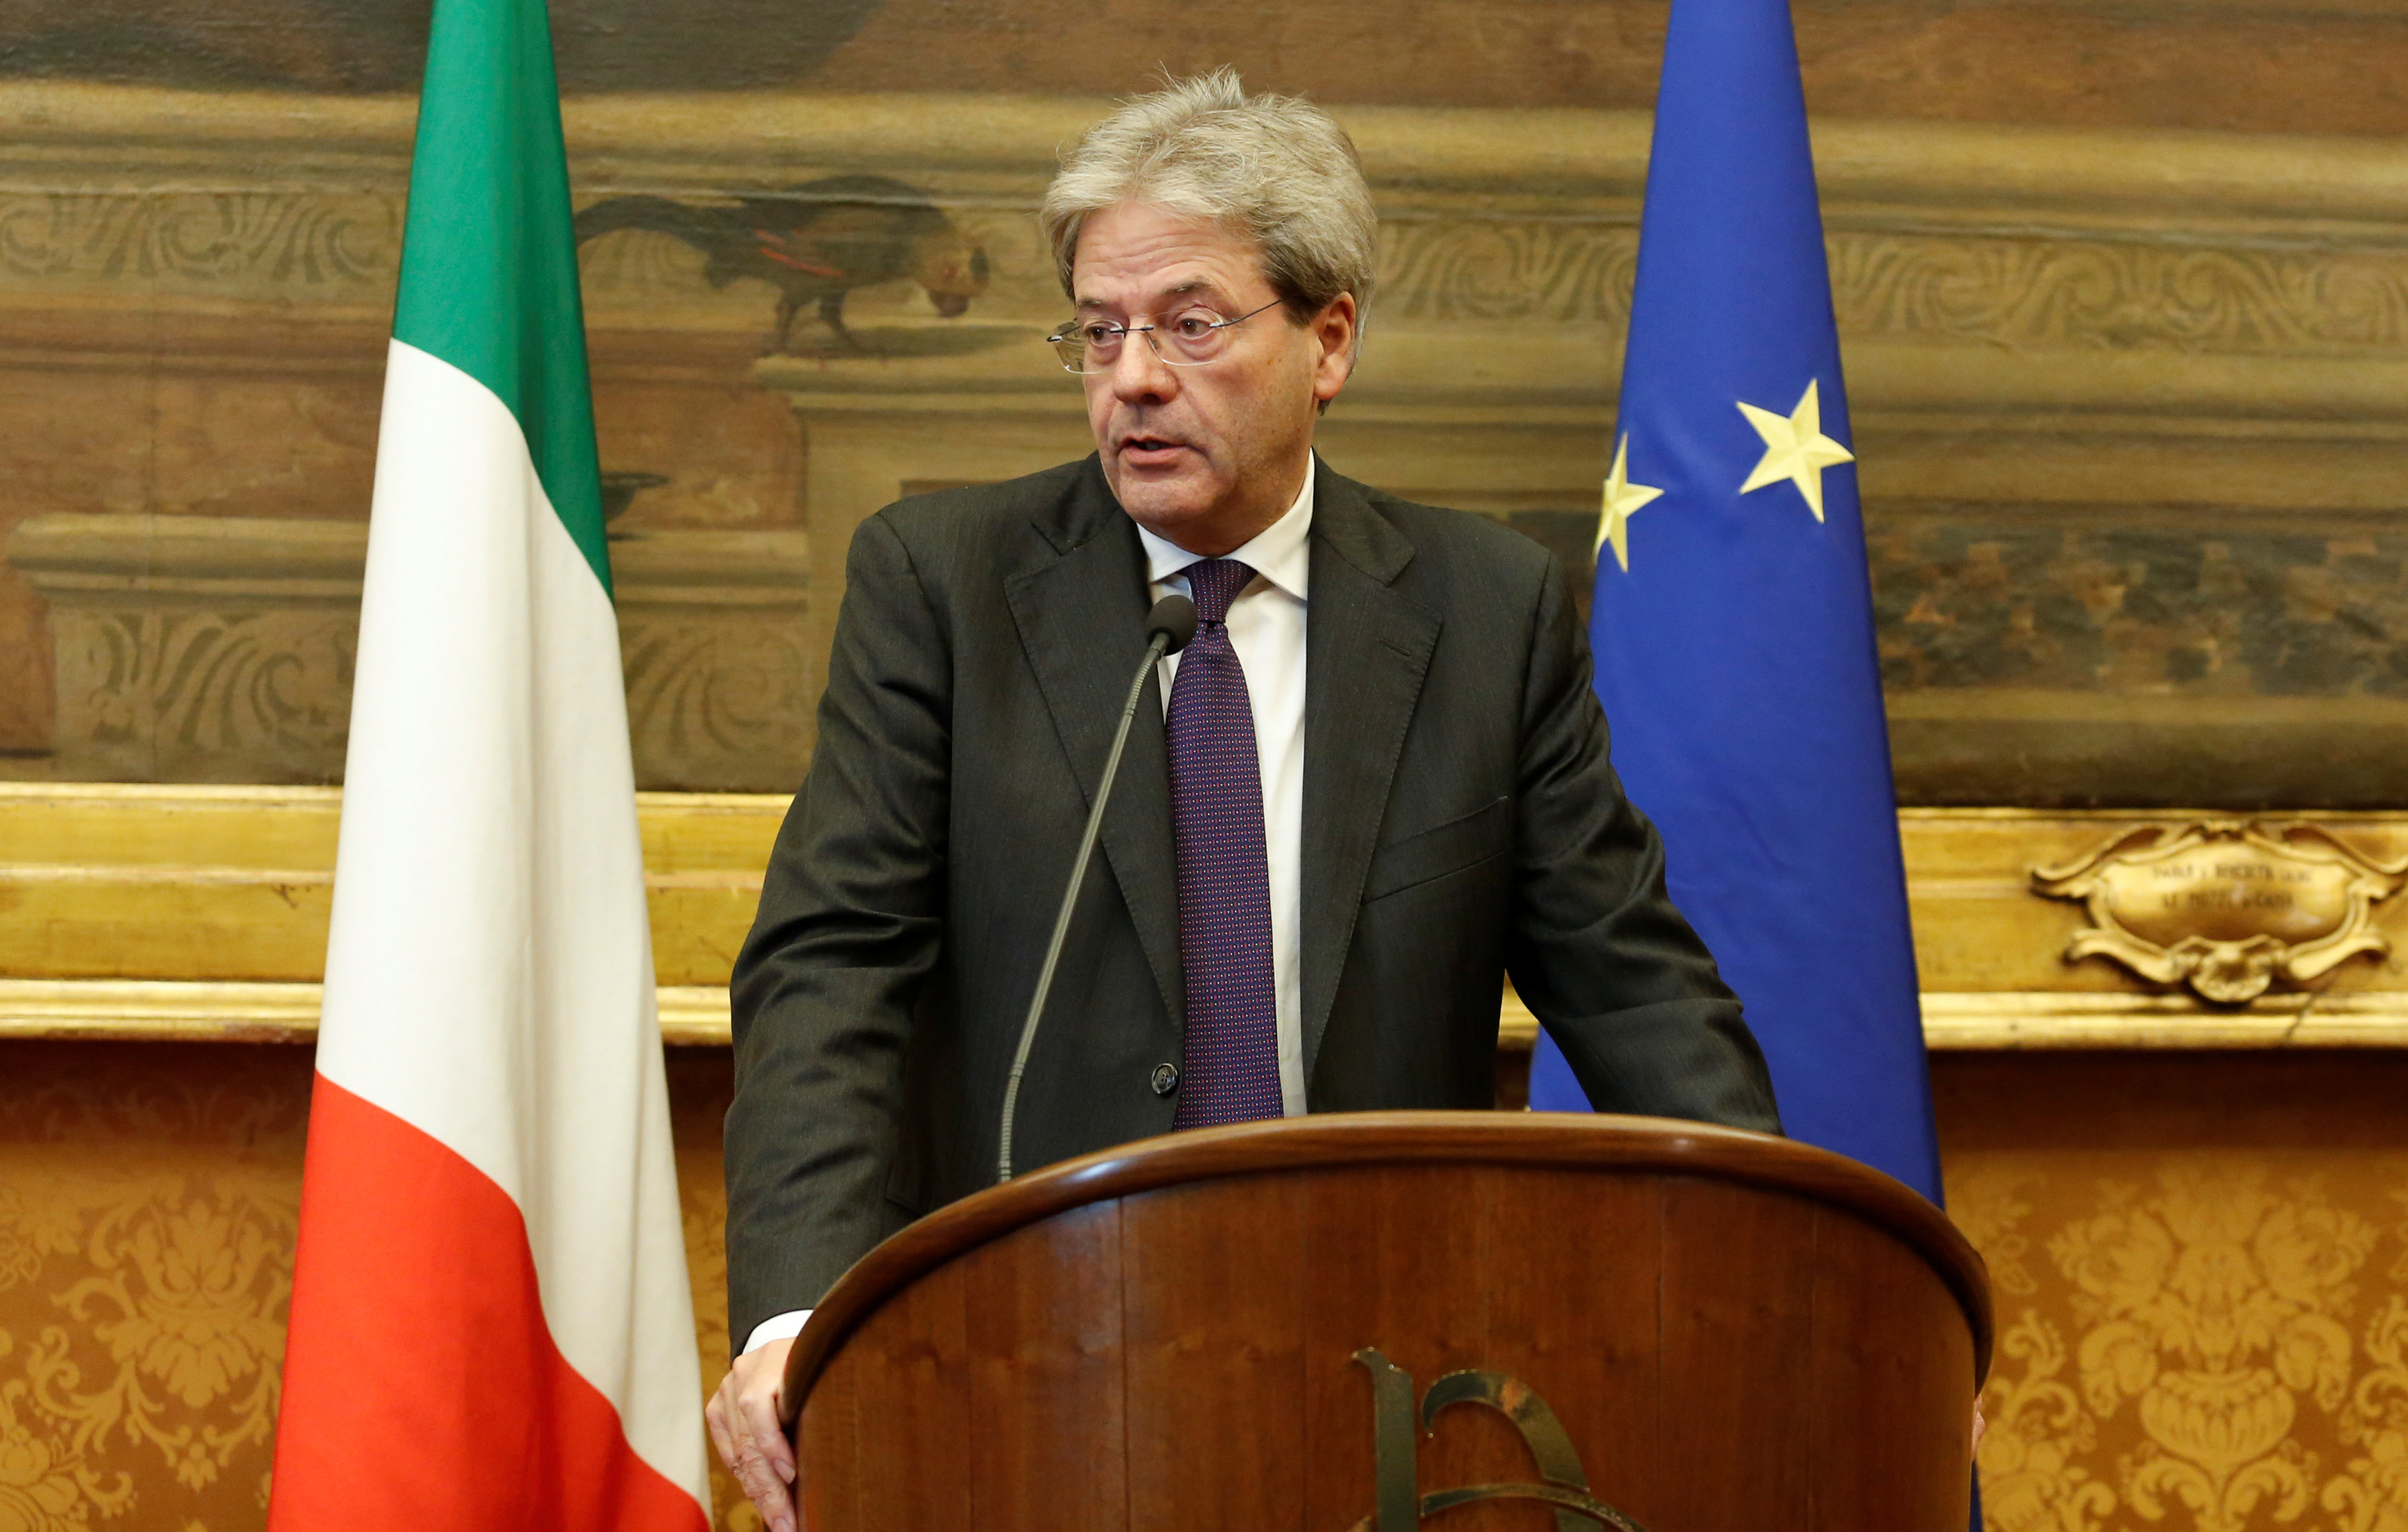 Weird Italy 2016-12-12T180812Z_2_LYNXMPECBB118_RTROPTP_4_ITALY-POLITICS Italian PM unveils new government, but centre-right ally threatens to quit Latest Italian News and Videos  Paolo Gentiloni matteo renzi Italian Prime Minister